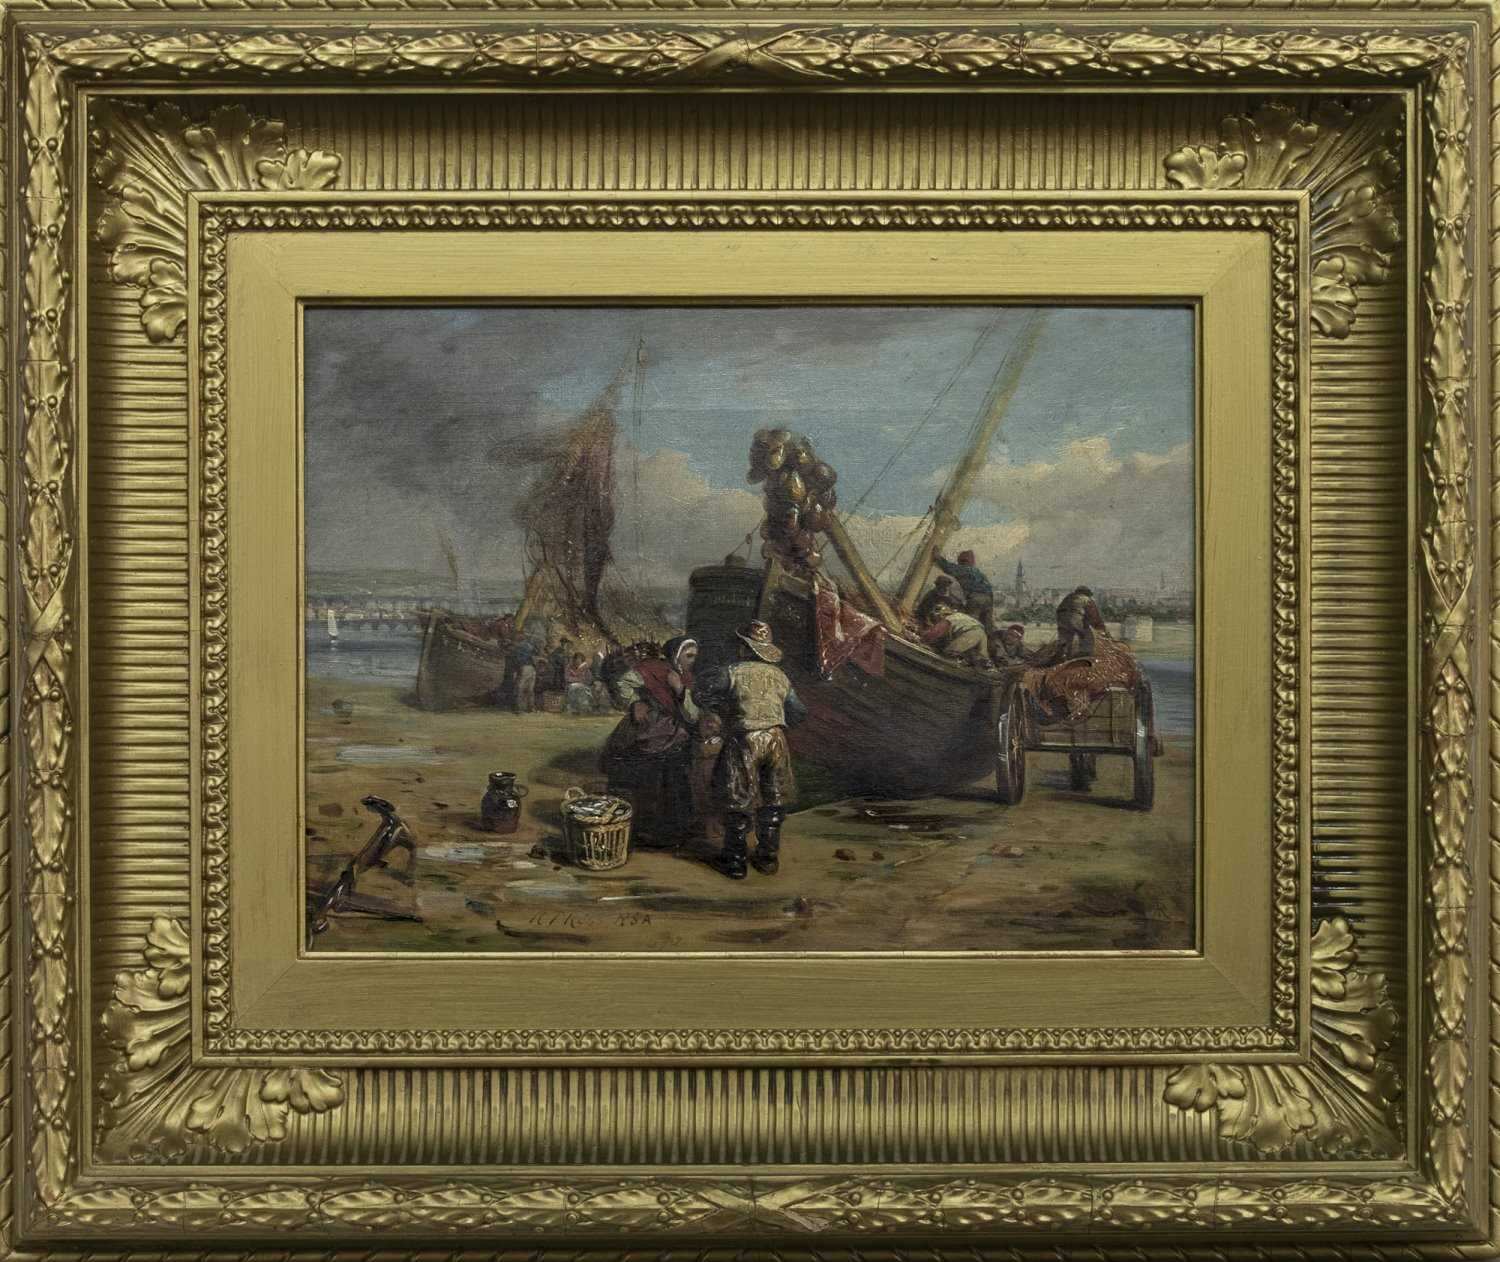 Lot 9 - UNPACKING THE BOATS, AN OIL BY ROBERT THORBURN ROSS